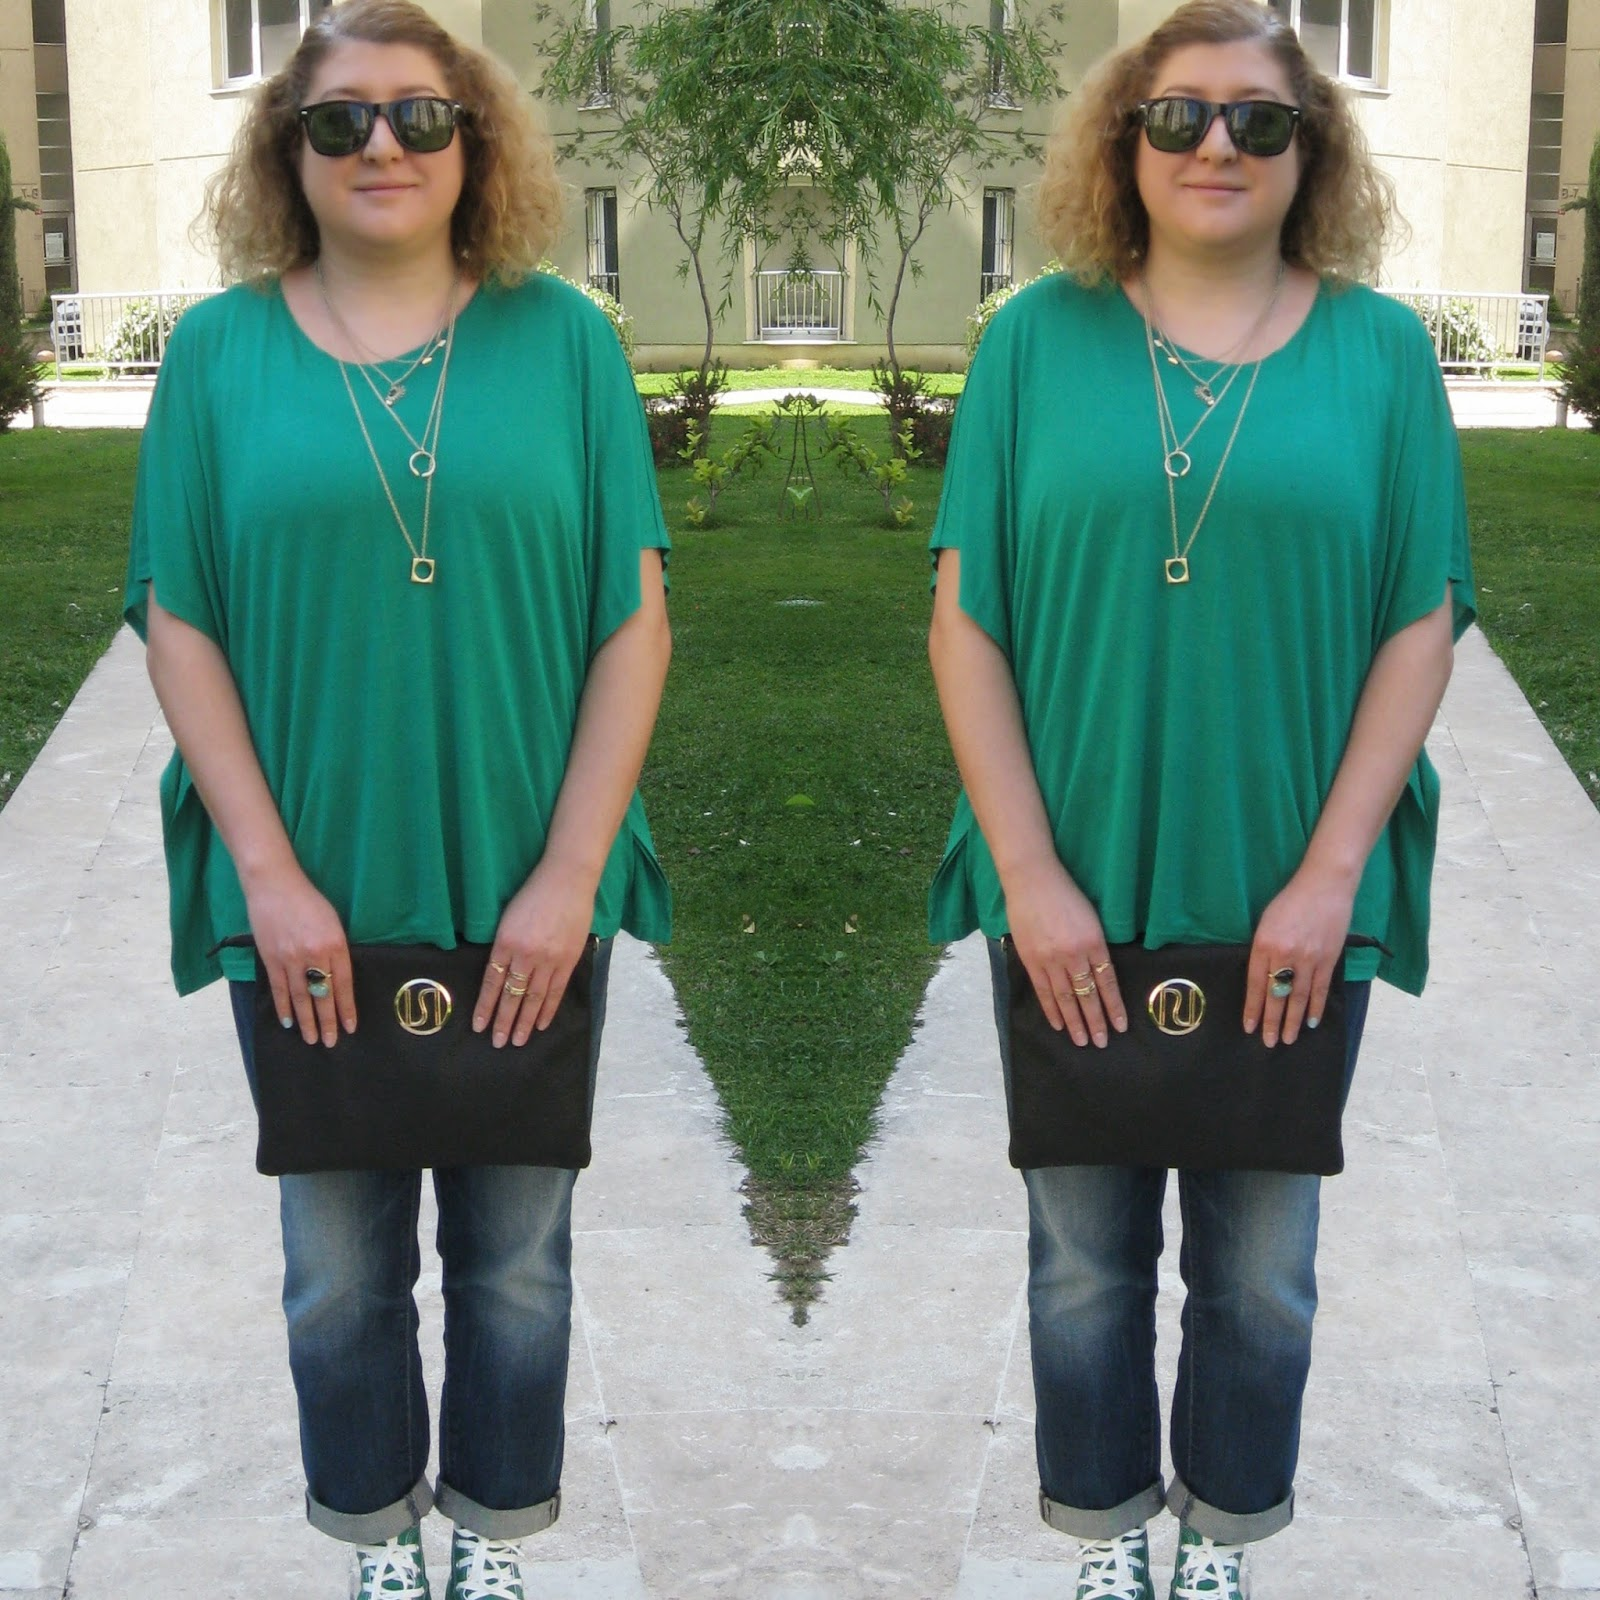 http://fashionsbit.blogspot.com.tr/2014/04/the-green-day.html